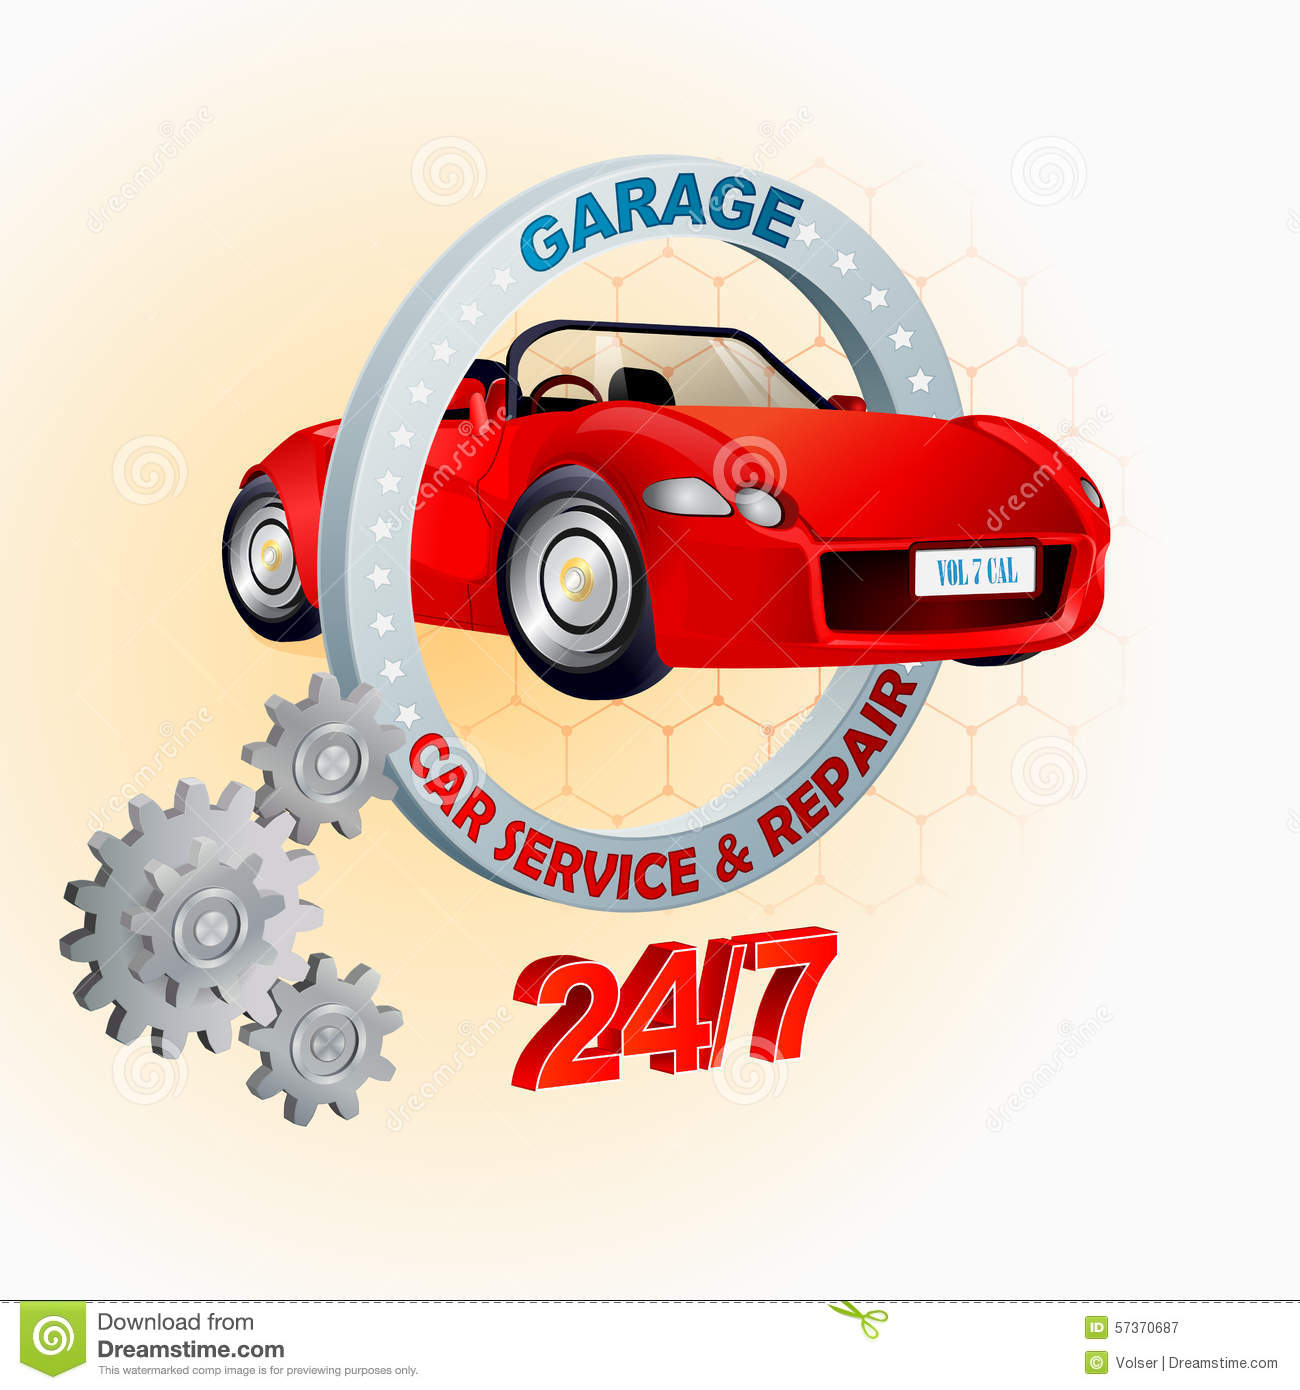 Garage Design Template Modern Design Template For Garage Car Service And Repair Sign